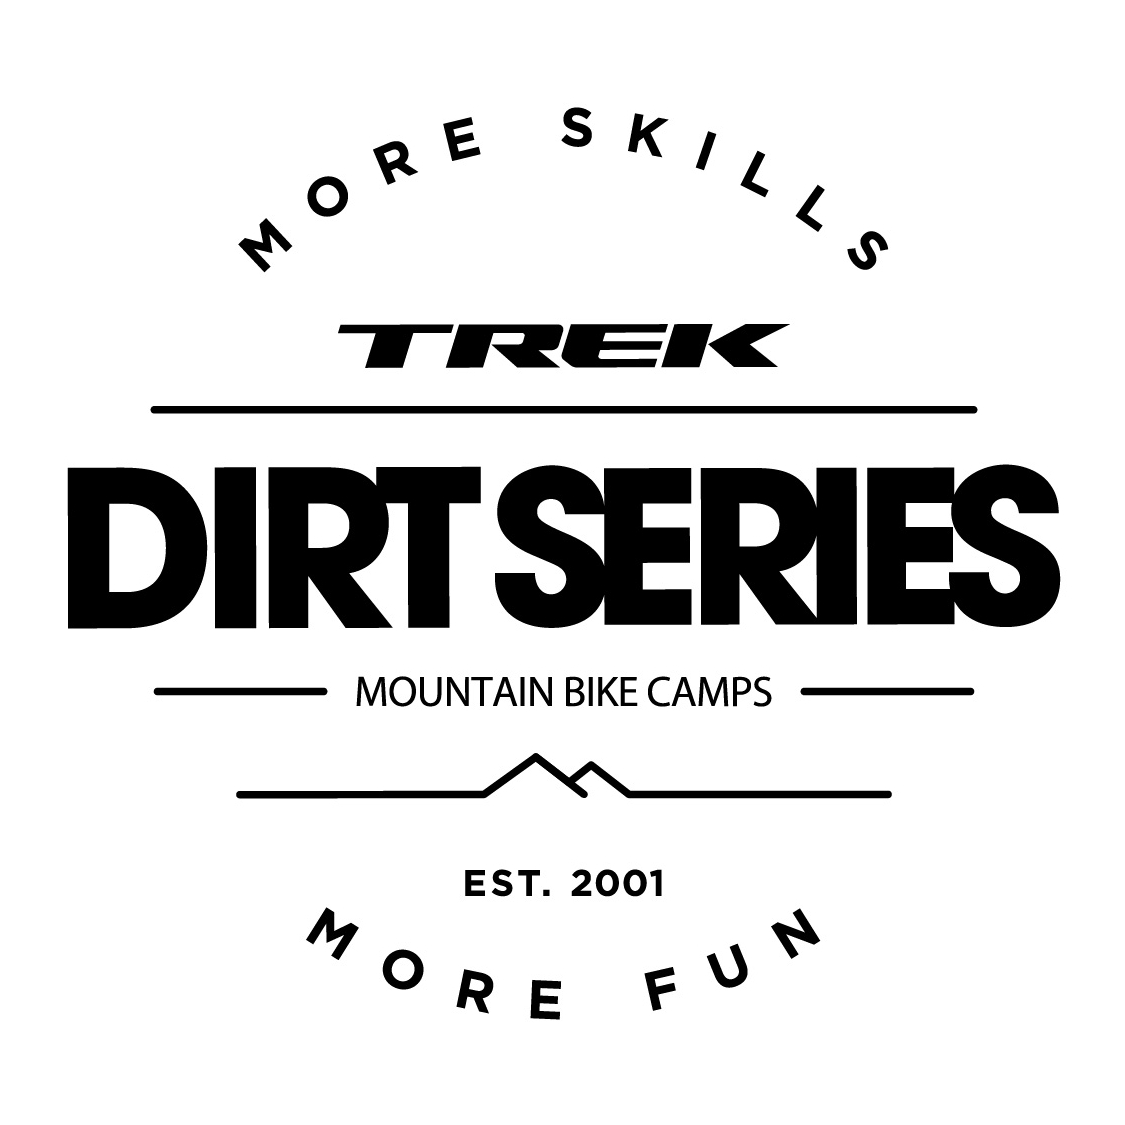 Dirt Series Mountain Bike Camp - Sedona, AZ